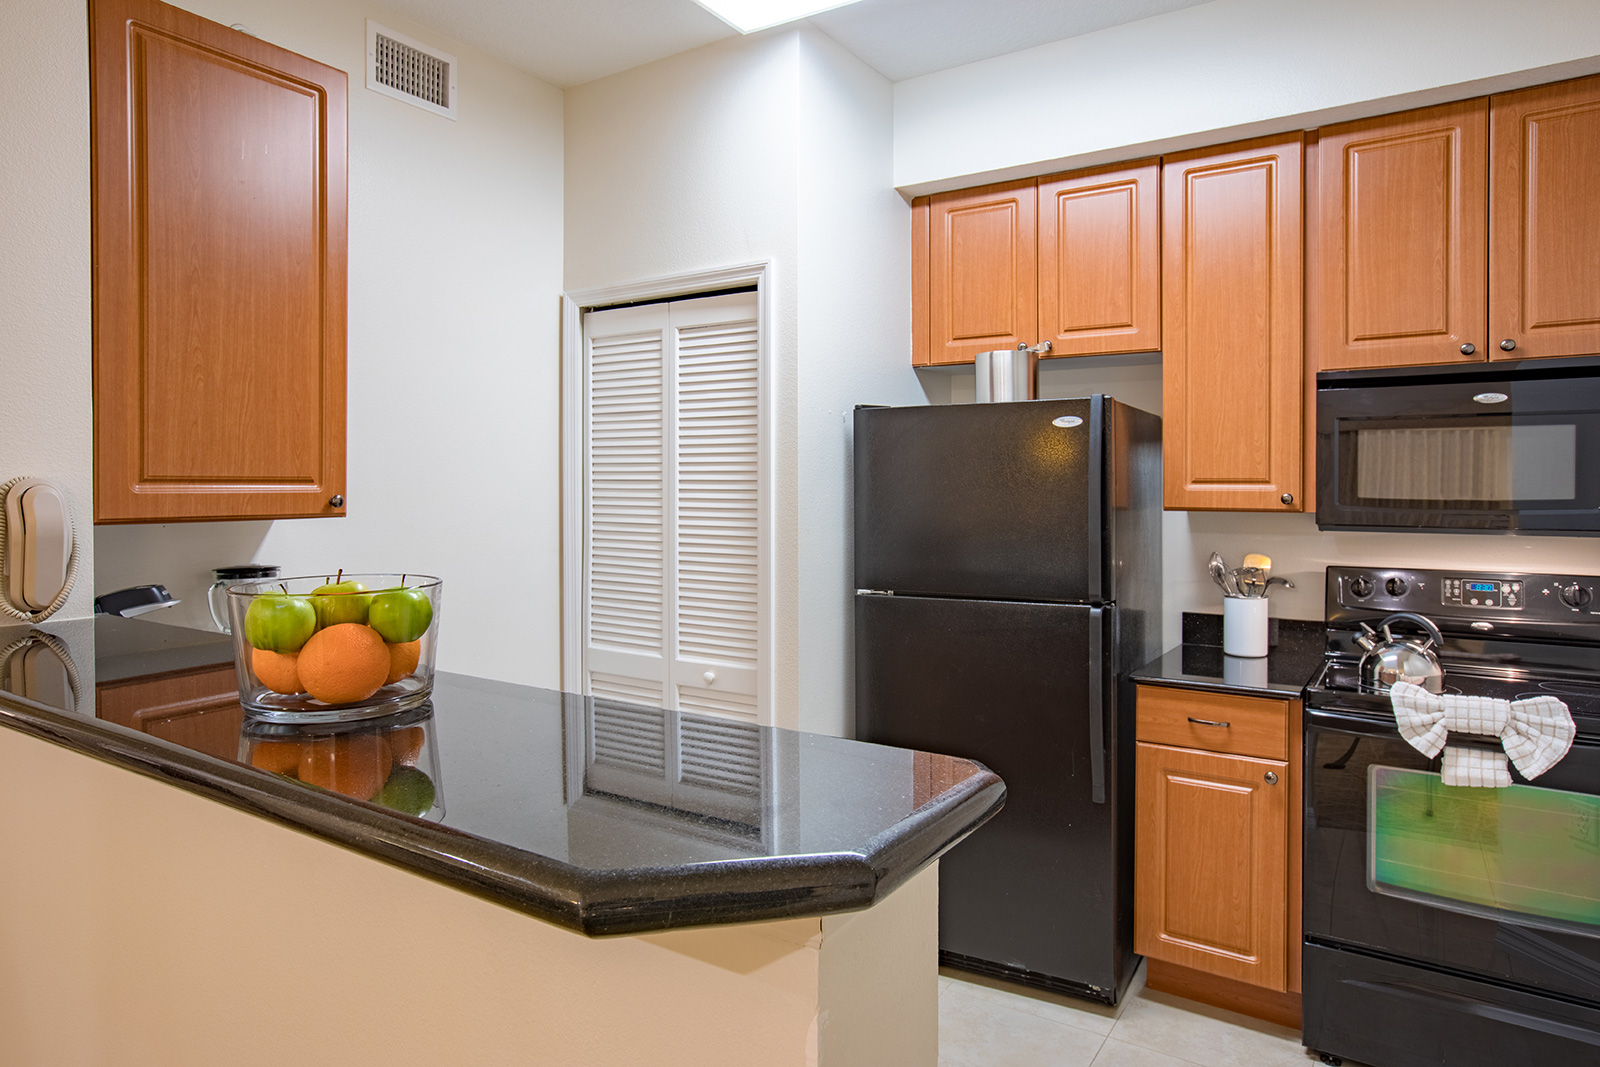 hotels with full kitchens in orlando florida small kitchen plans all suite one and two bedroom resort suites link to larger item photo listitemcarouselimage2